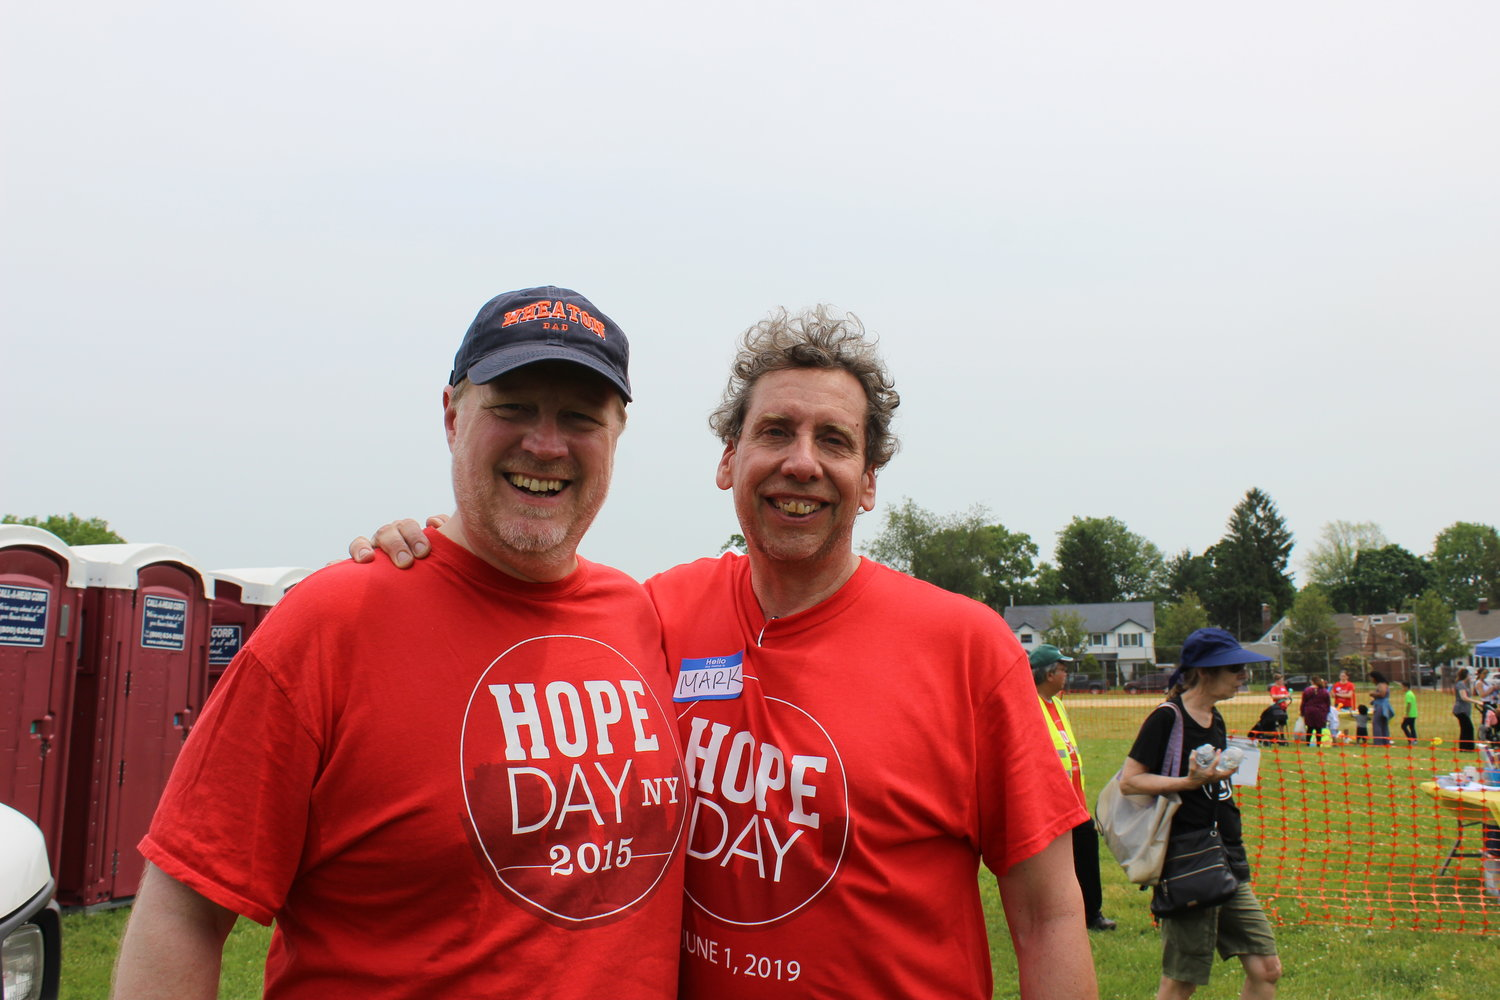 Pastor Dan Olson, of New Hope Church, left, led the event with help from Mark Bevilacque, of Shelter Rock Church.